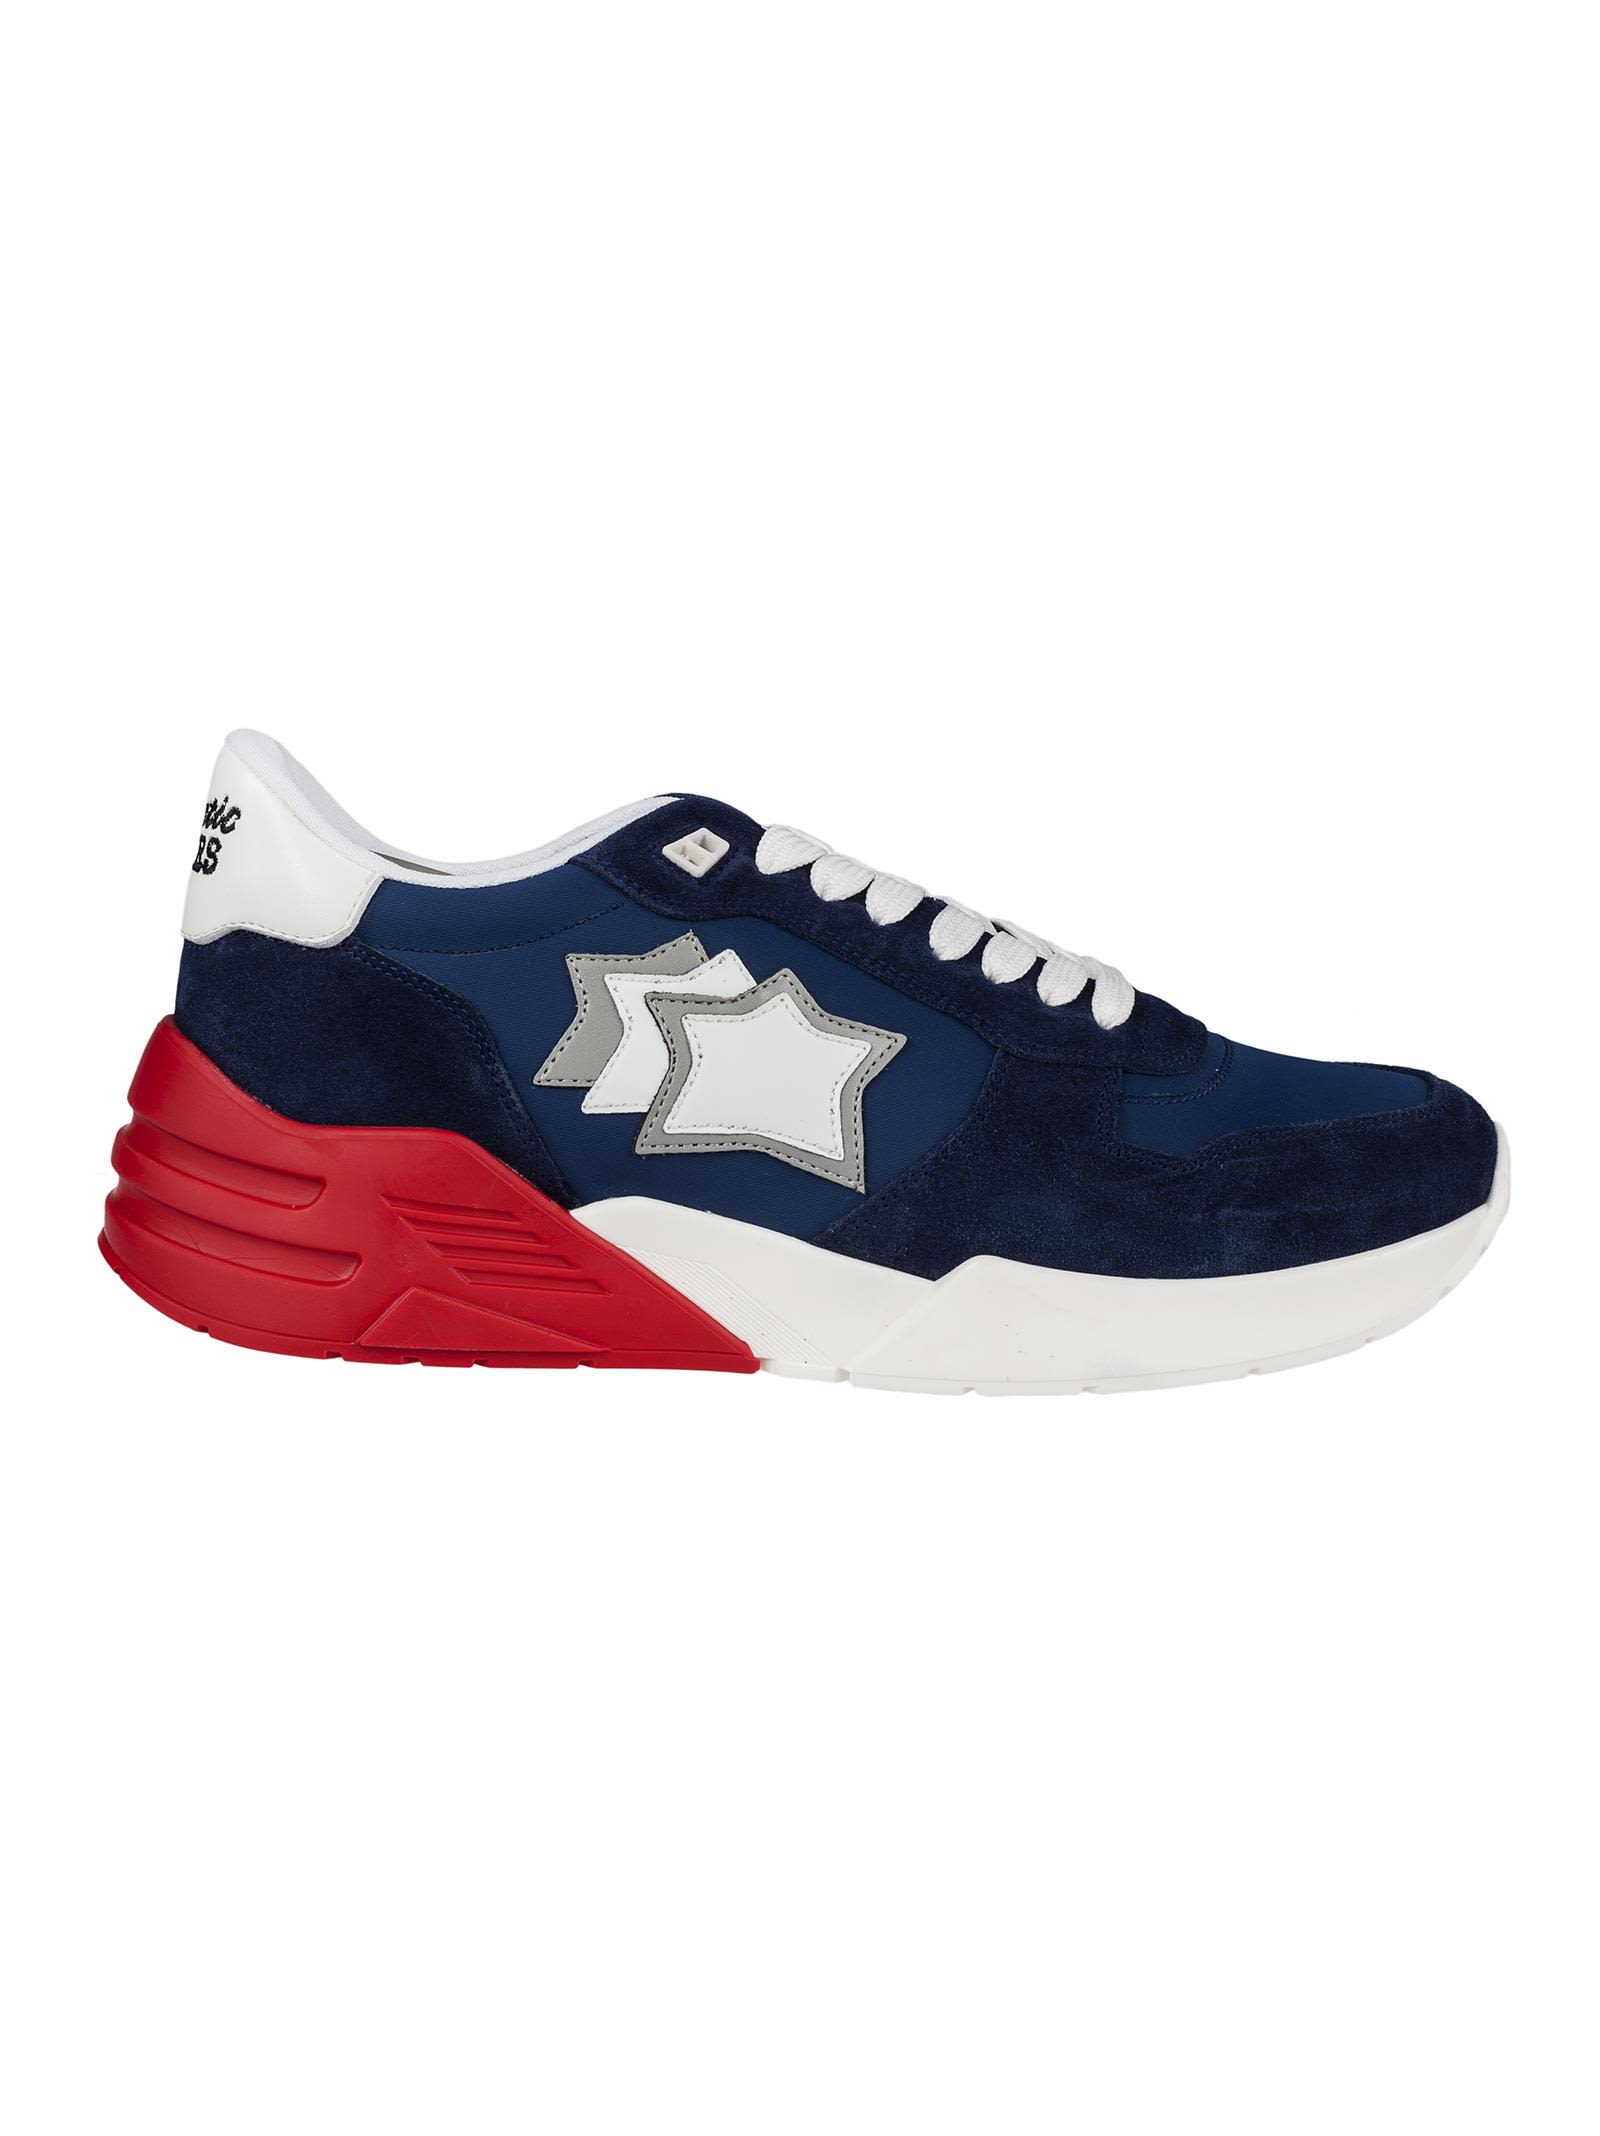 Atlantic Stars Mars sneakers find great for sale latest collections online brand new unisex for sale Q1ewvPY